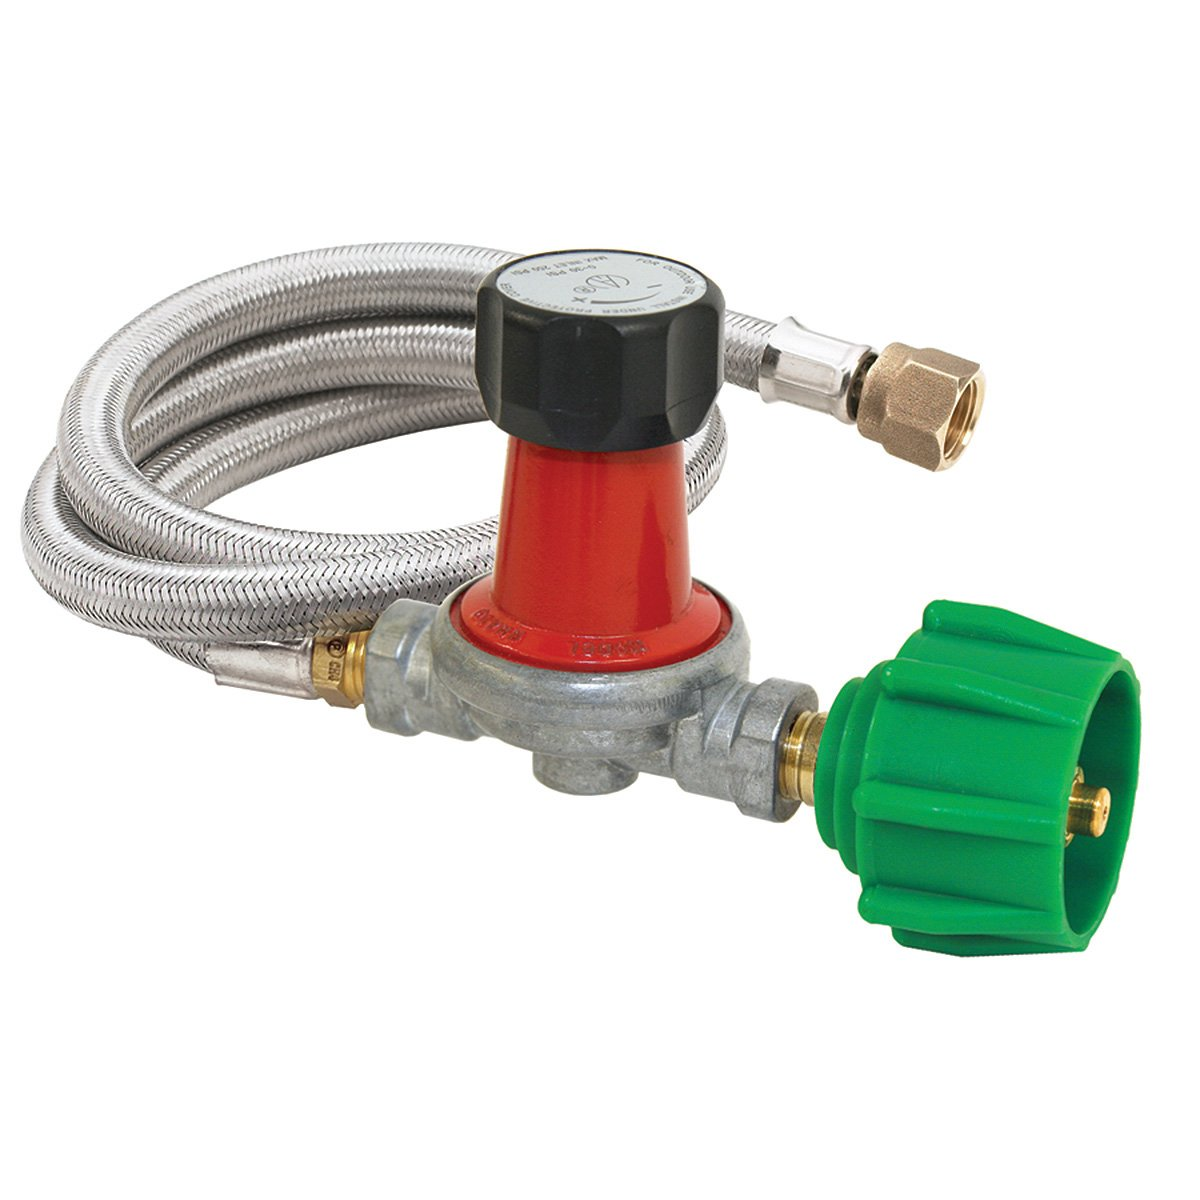 Bayou Classic M5HPR-30, 0-30 PSI Adjustable Regulator with Stainless Braided Hose by Bayou Classic